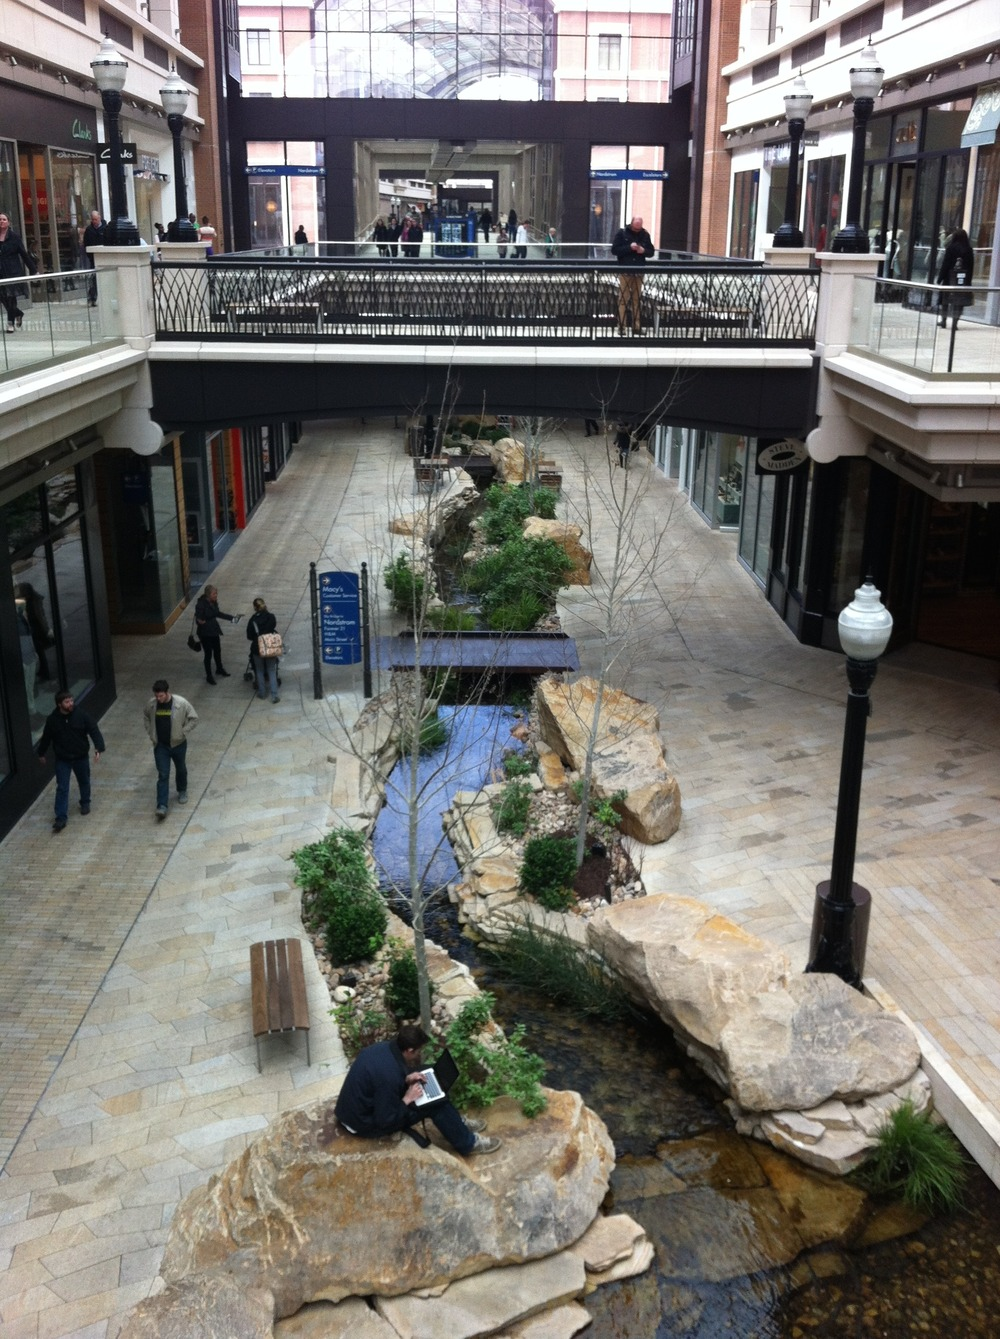 There is an actual creek running through the shopping centre.